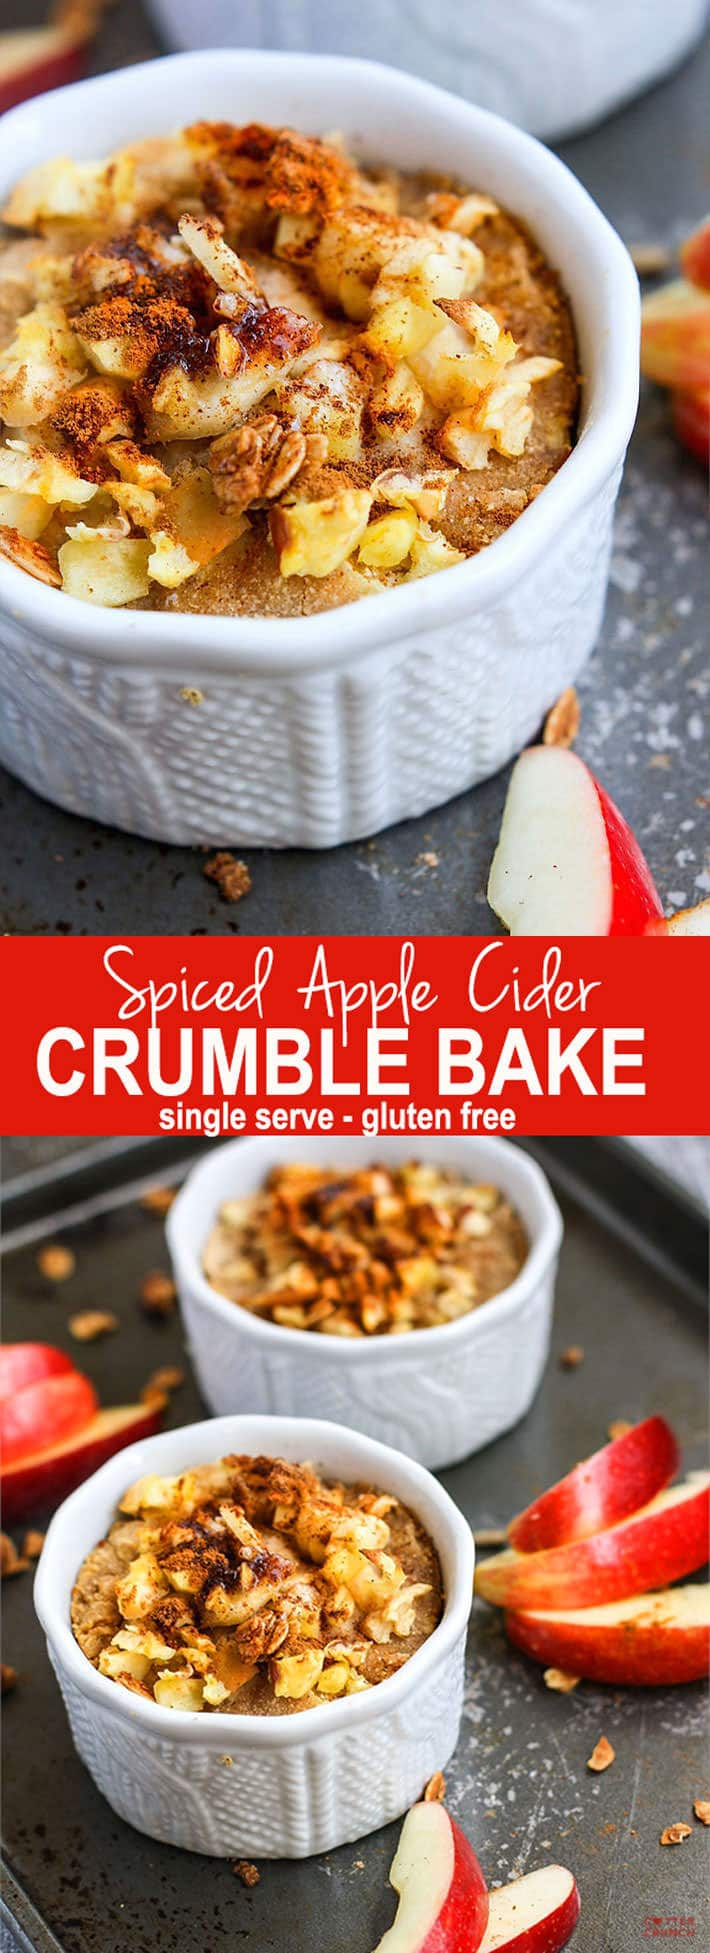 Healthy Spiced Apple Cider Crumble